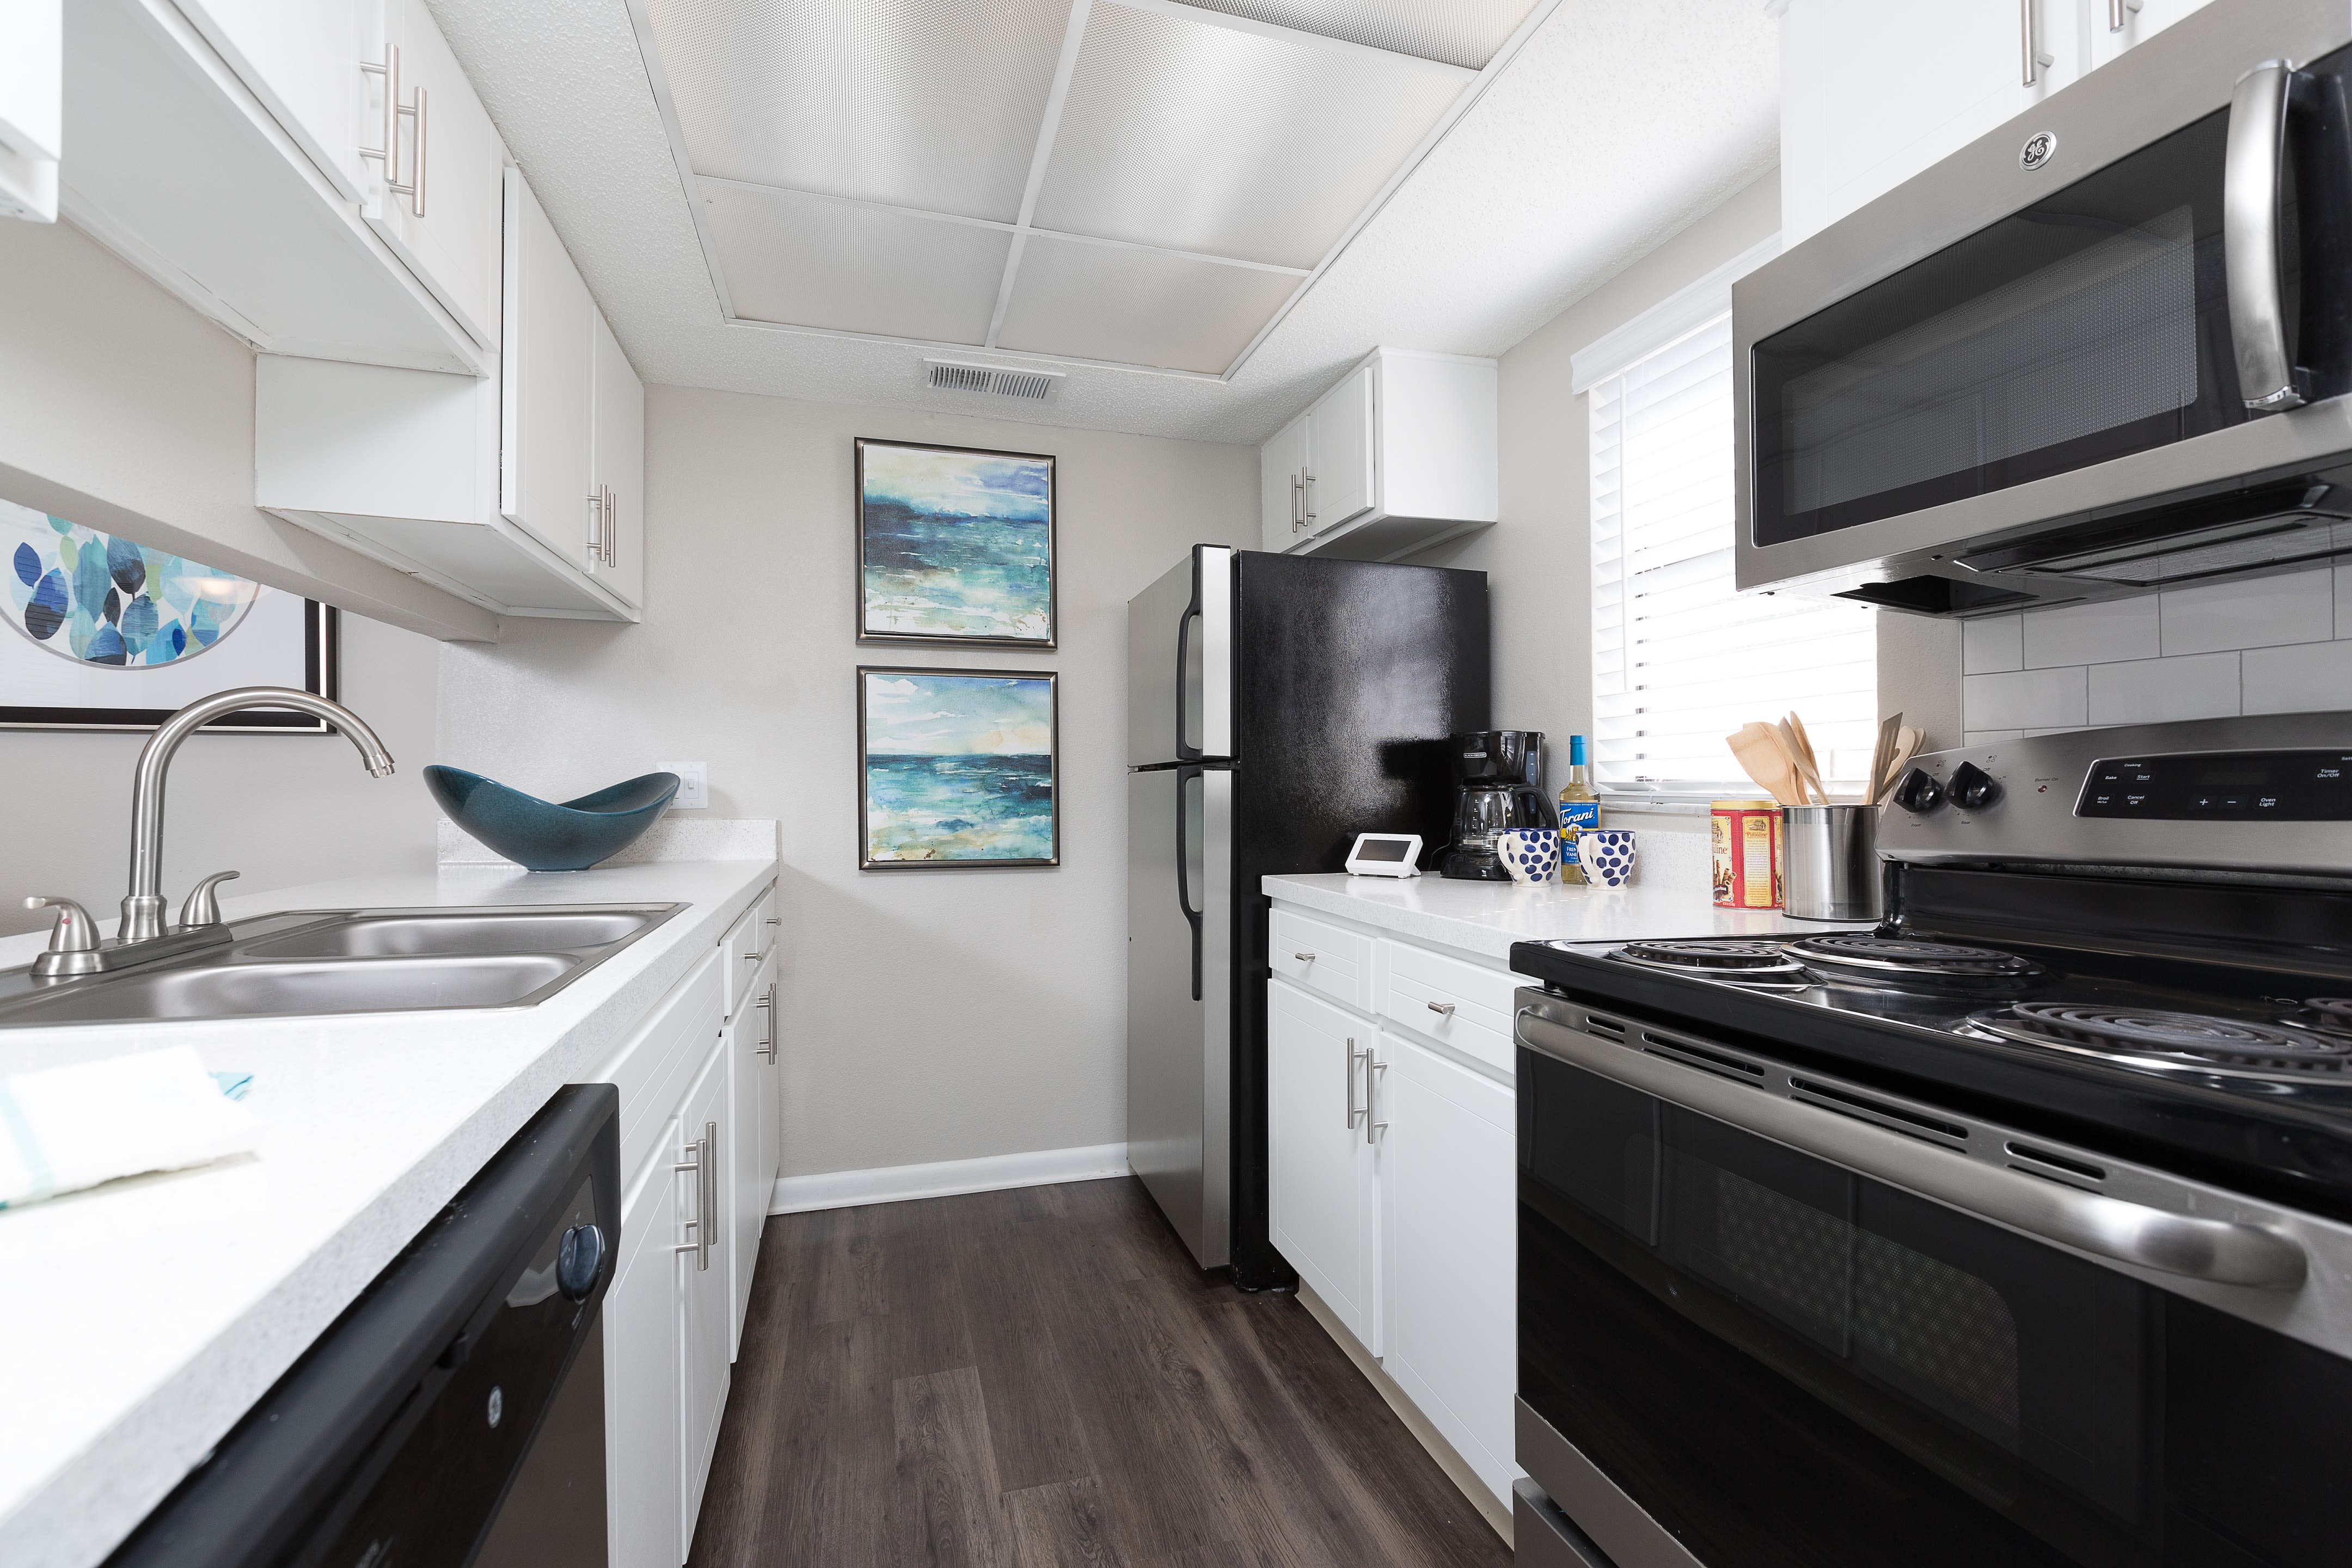 Modern kitchen with stainless steel appliances and granite countertops at WestEnd At 76Ten in Tampa, Florida